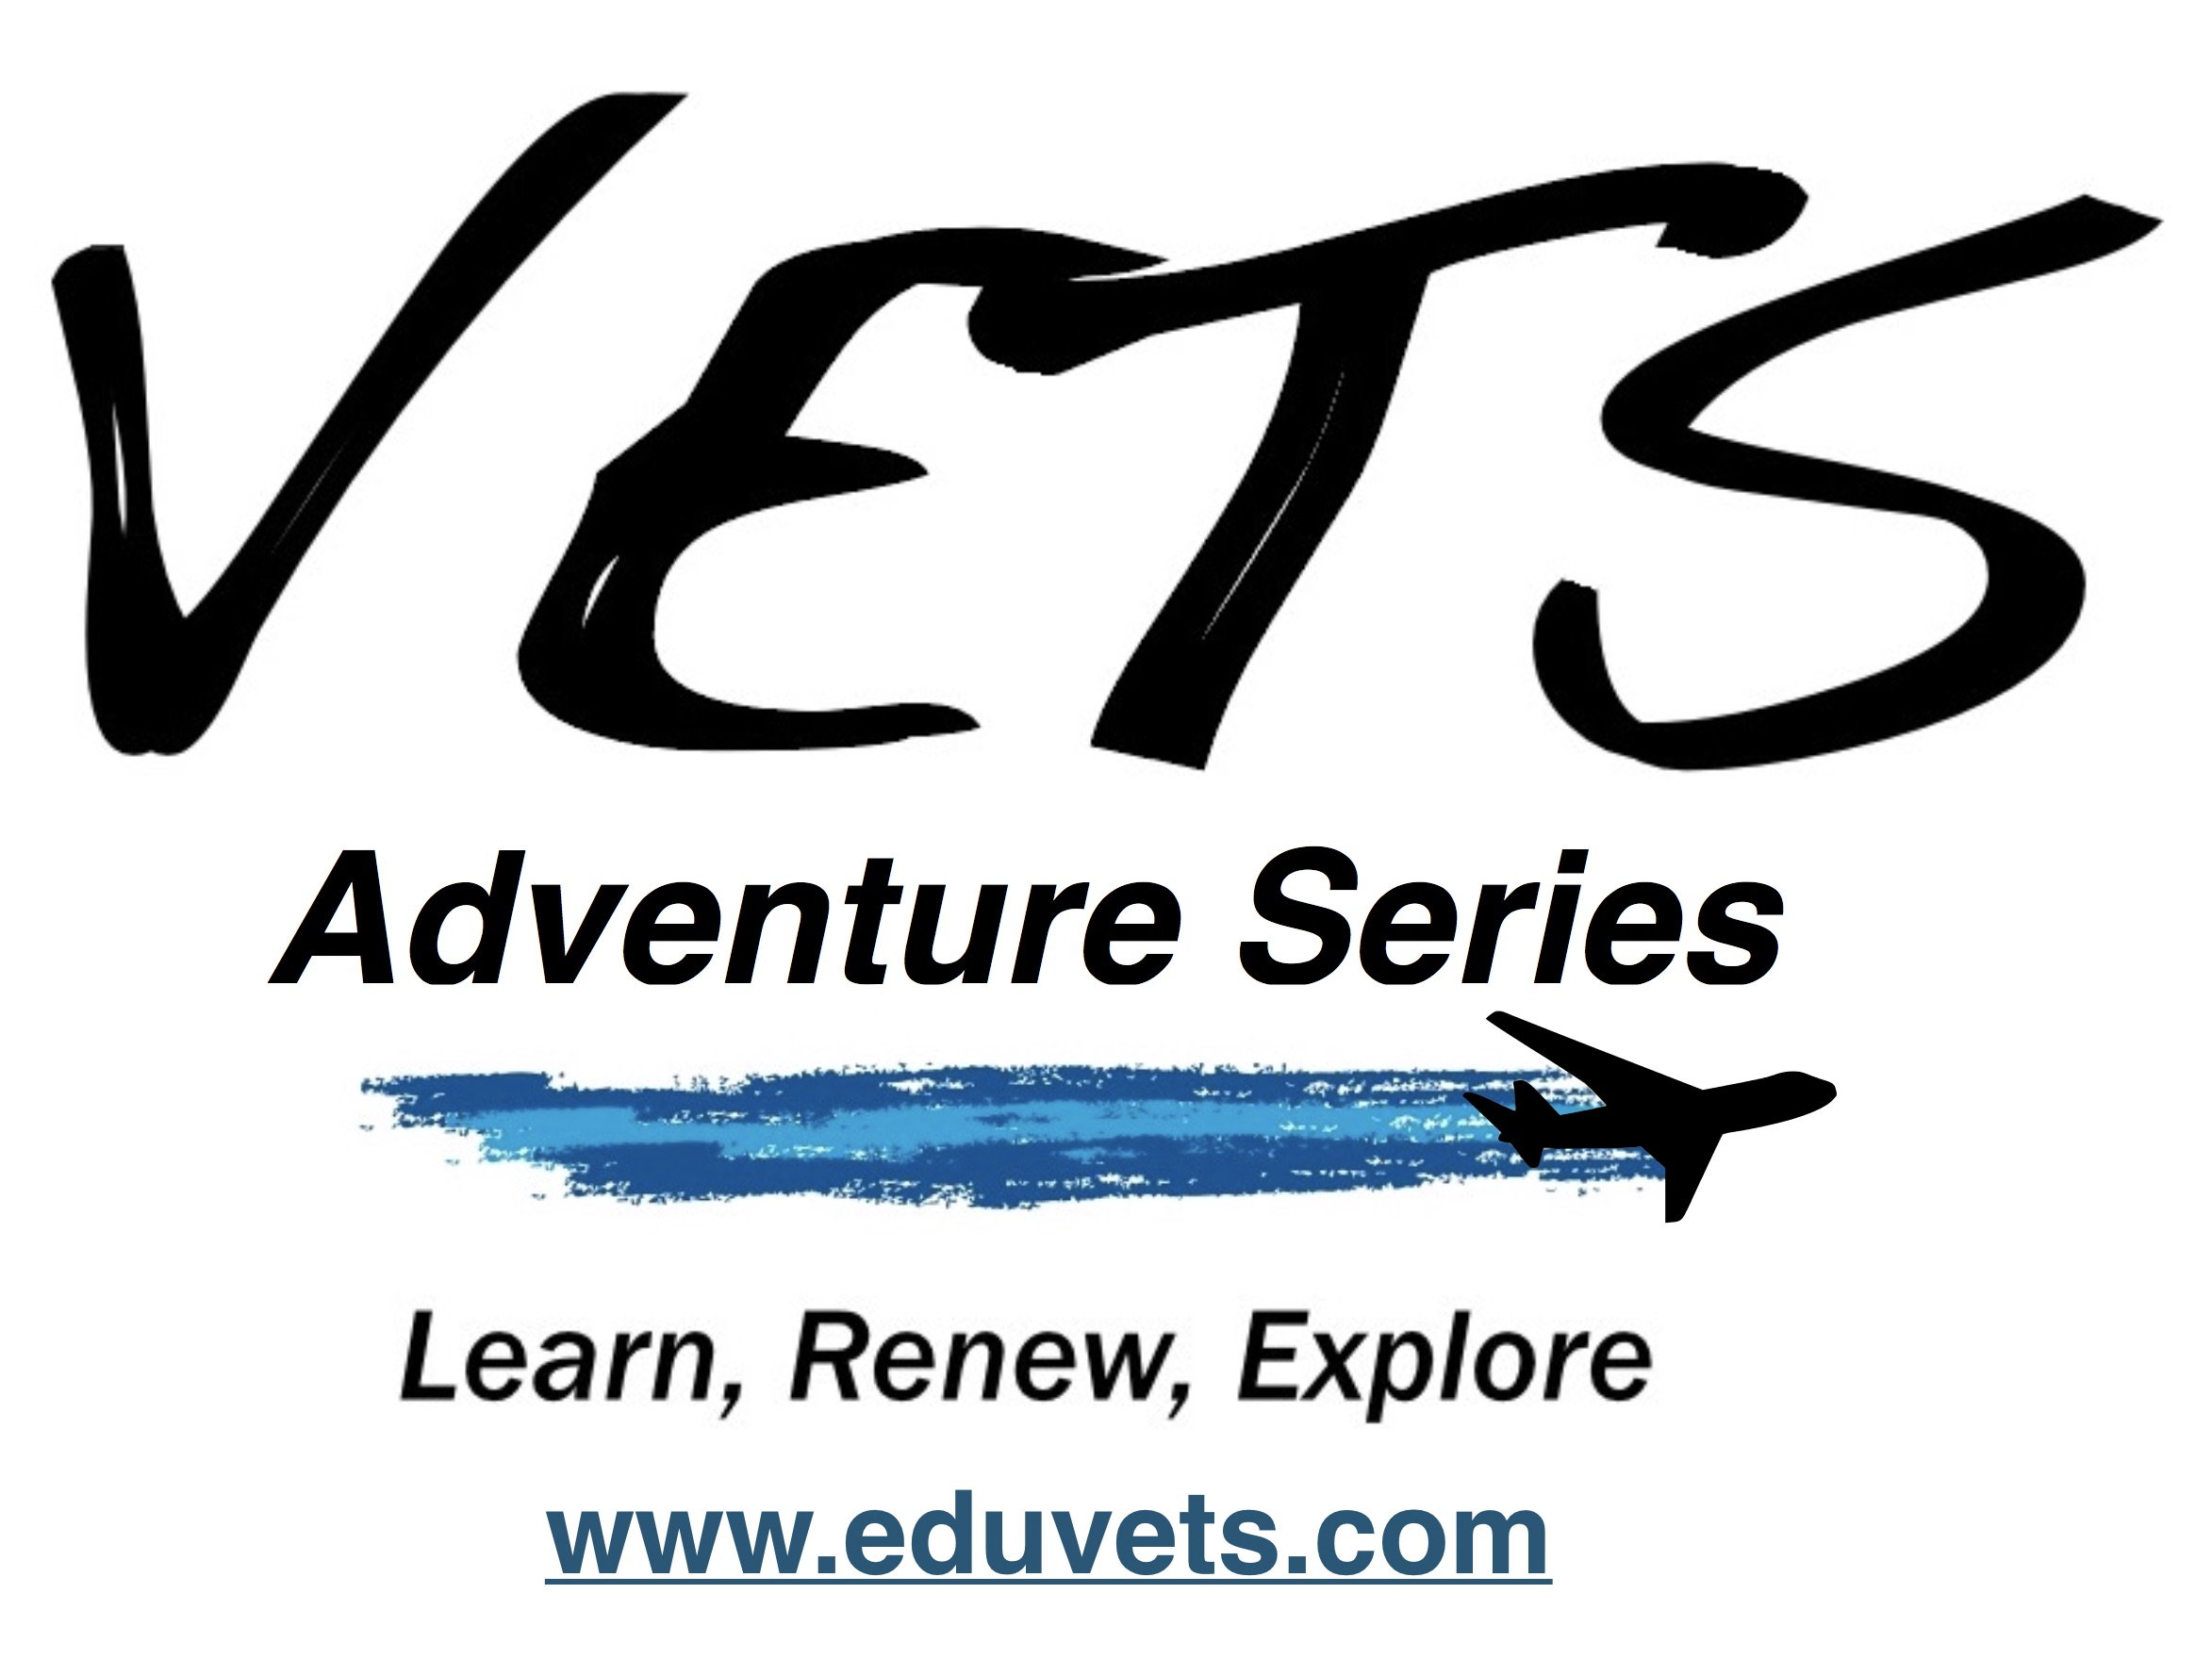 VETS Adventure Series logo no border.jpg